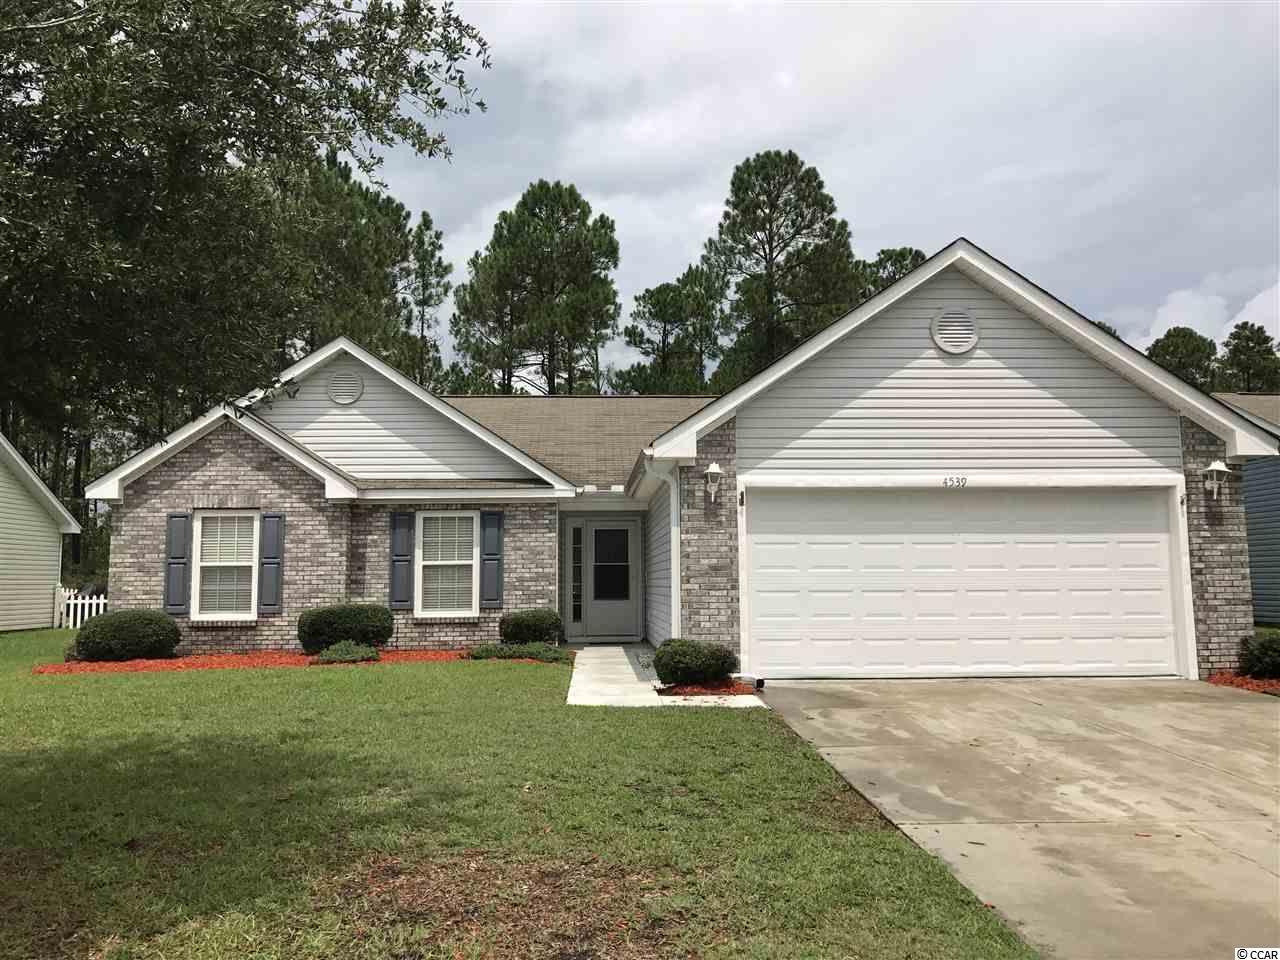 4539 E Walkerton Rd, Myrtle Beach, SC 29579